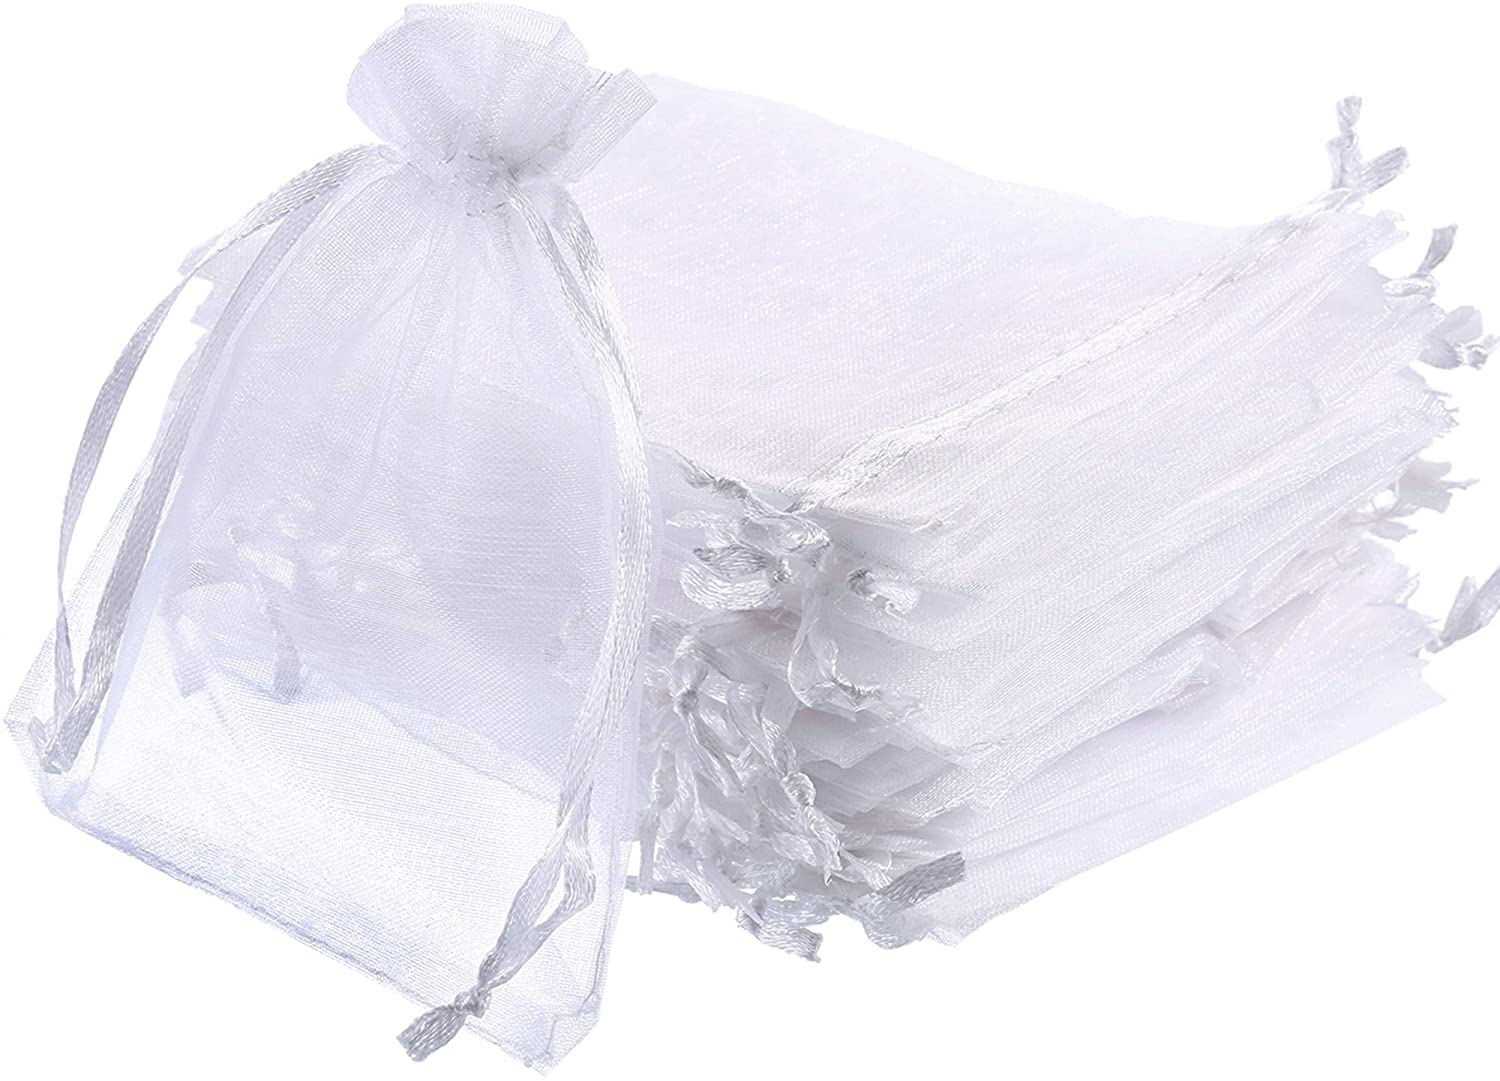 Hestya 200 Pieces White Organza Gift Bags 4 by 4.72 Inch Sheer Drawstring Pouches Jewelry Packing Bags for Wedding Birthday Christmas Party Crafts Favor